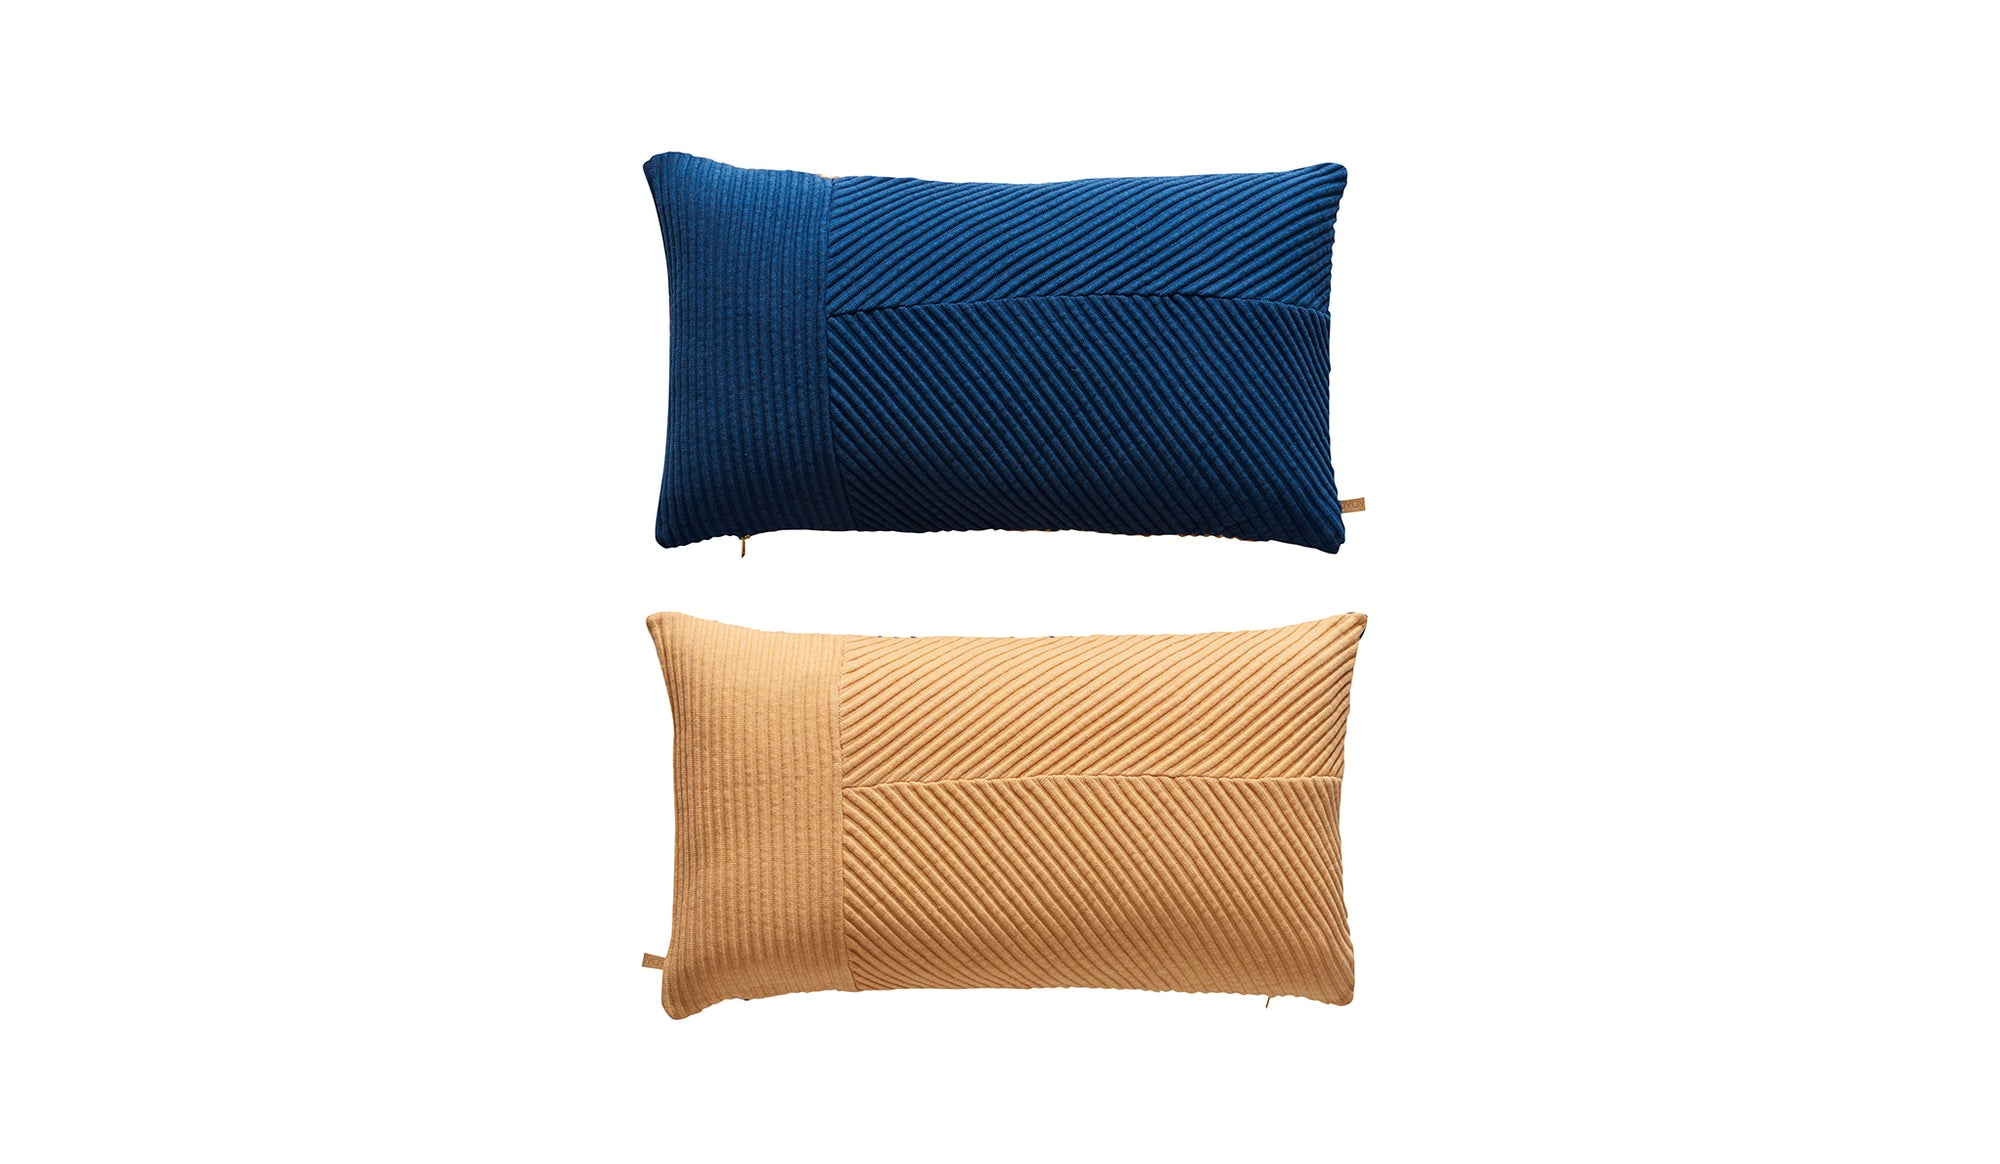 Ada Cushion | Dazzling Blue and Peach